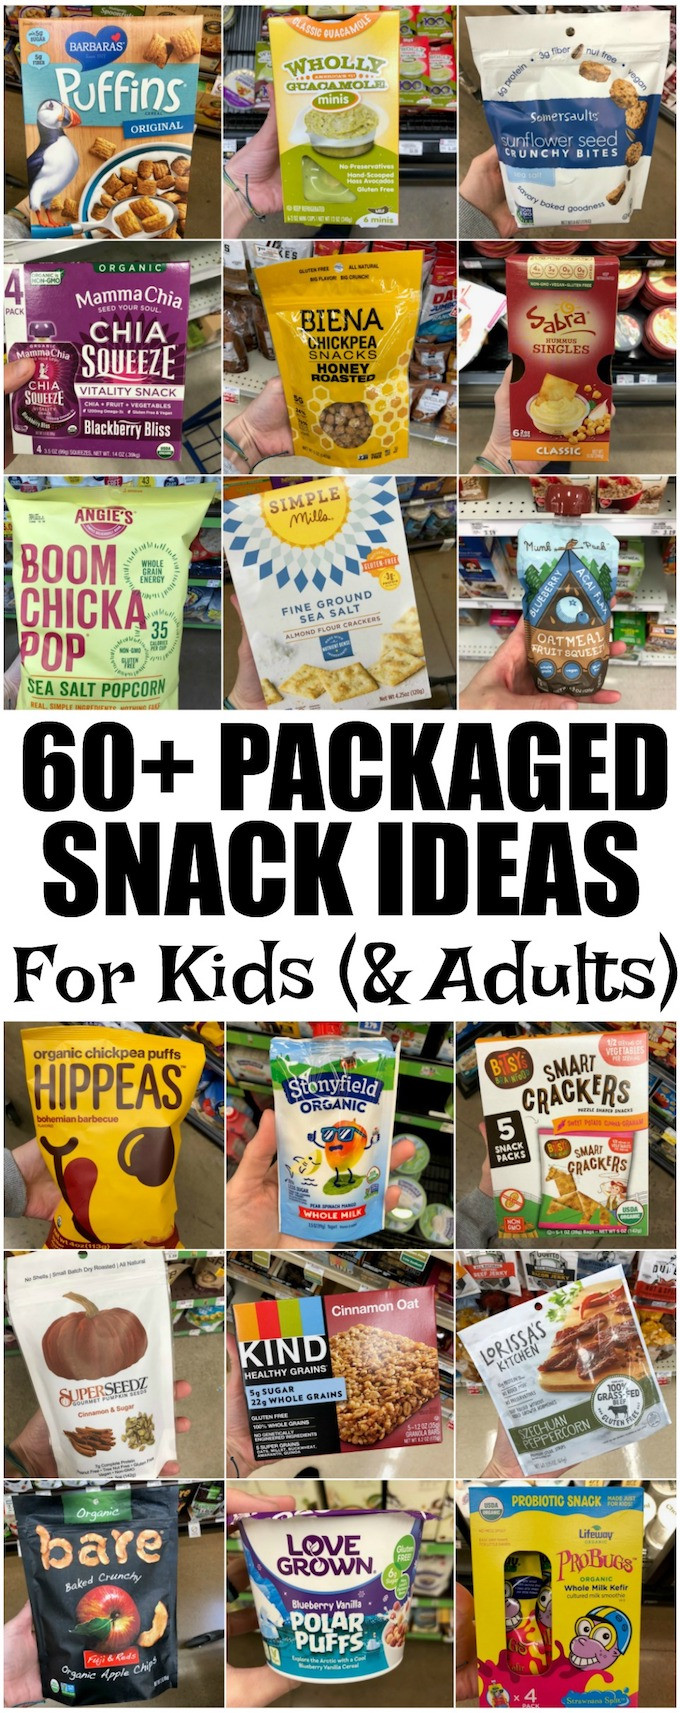 Packaged Healthy Snacks  60 Healthy Packaged Snacks For Kids